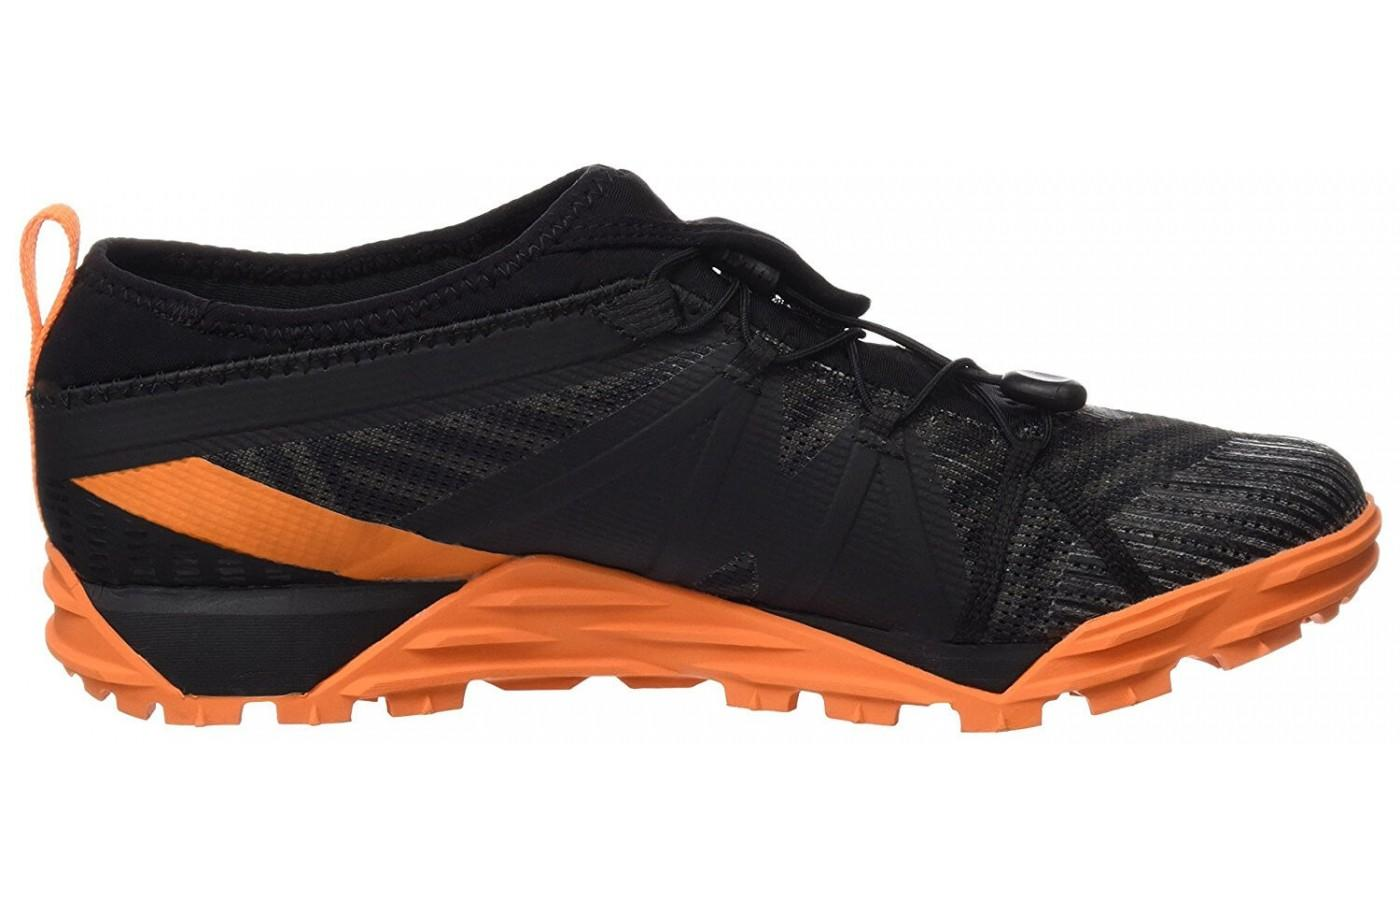 The Merrell Avalaunch Tough Mudder uses UniFly for cushioning and absorbing shock